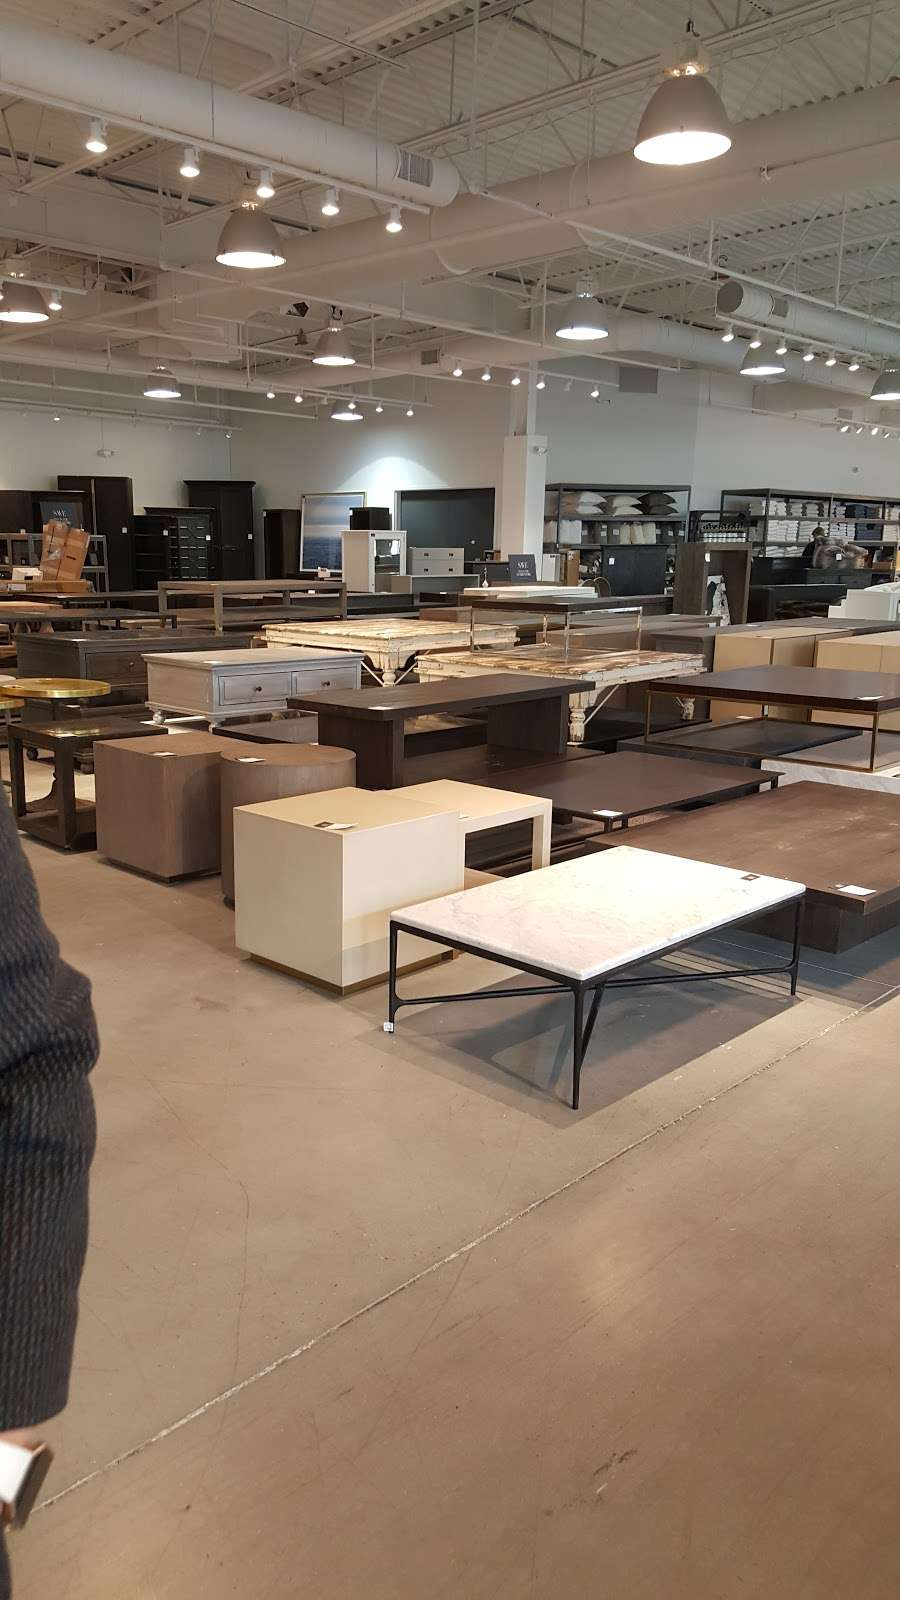 Restoration Hardware Outlet - furniture store  | Photo 5 of 10 | Address: 18 West Lightcap Rd Suite 501, Sanatoga, PA 19464, USA | Phone: (610) 970-1518